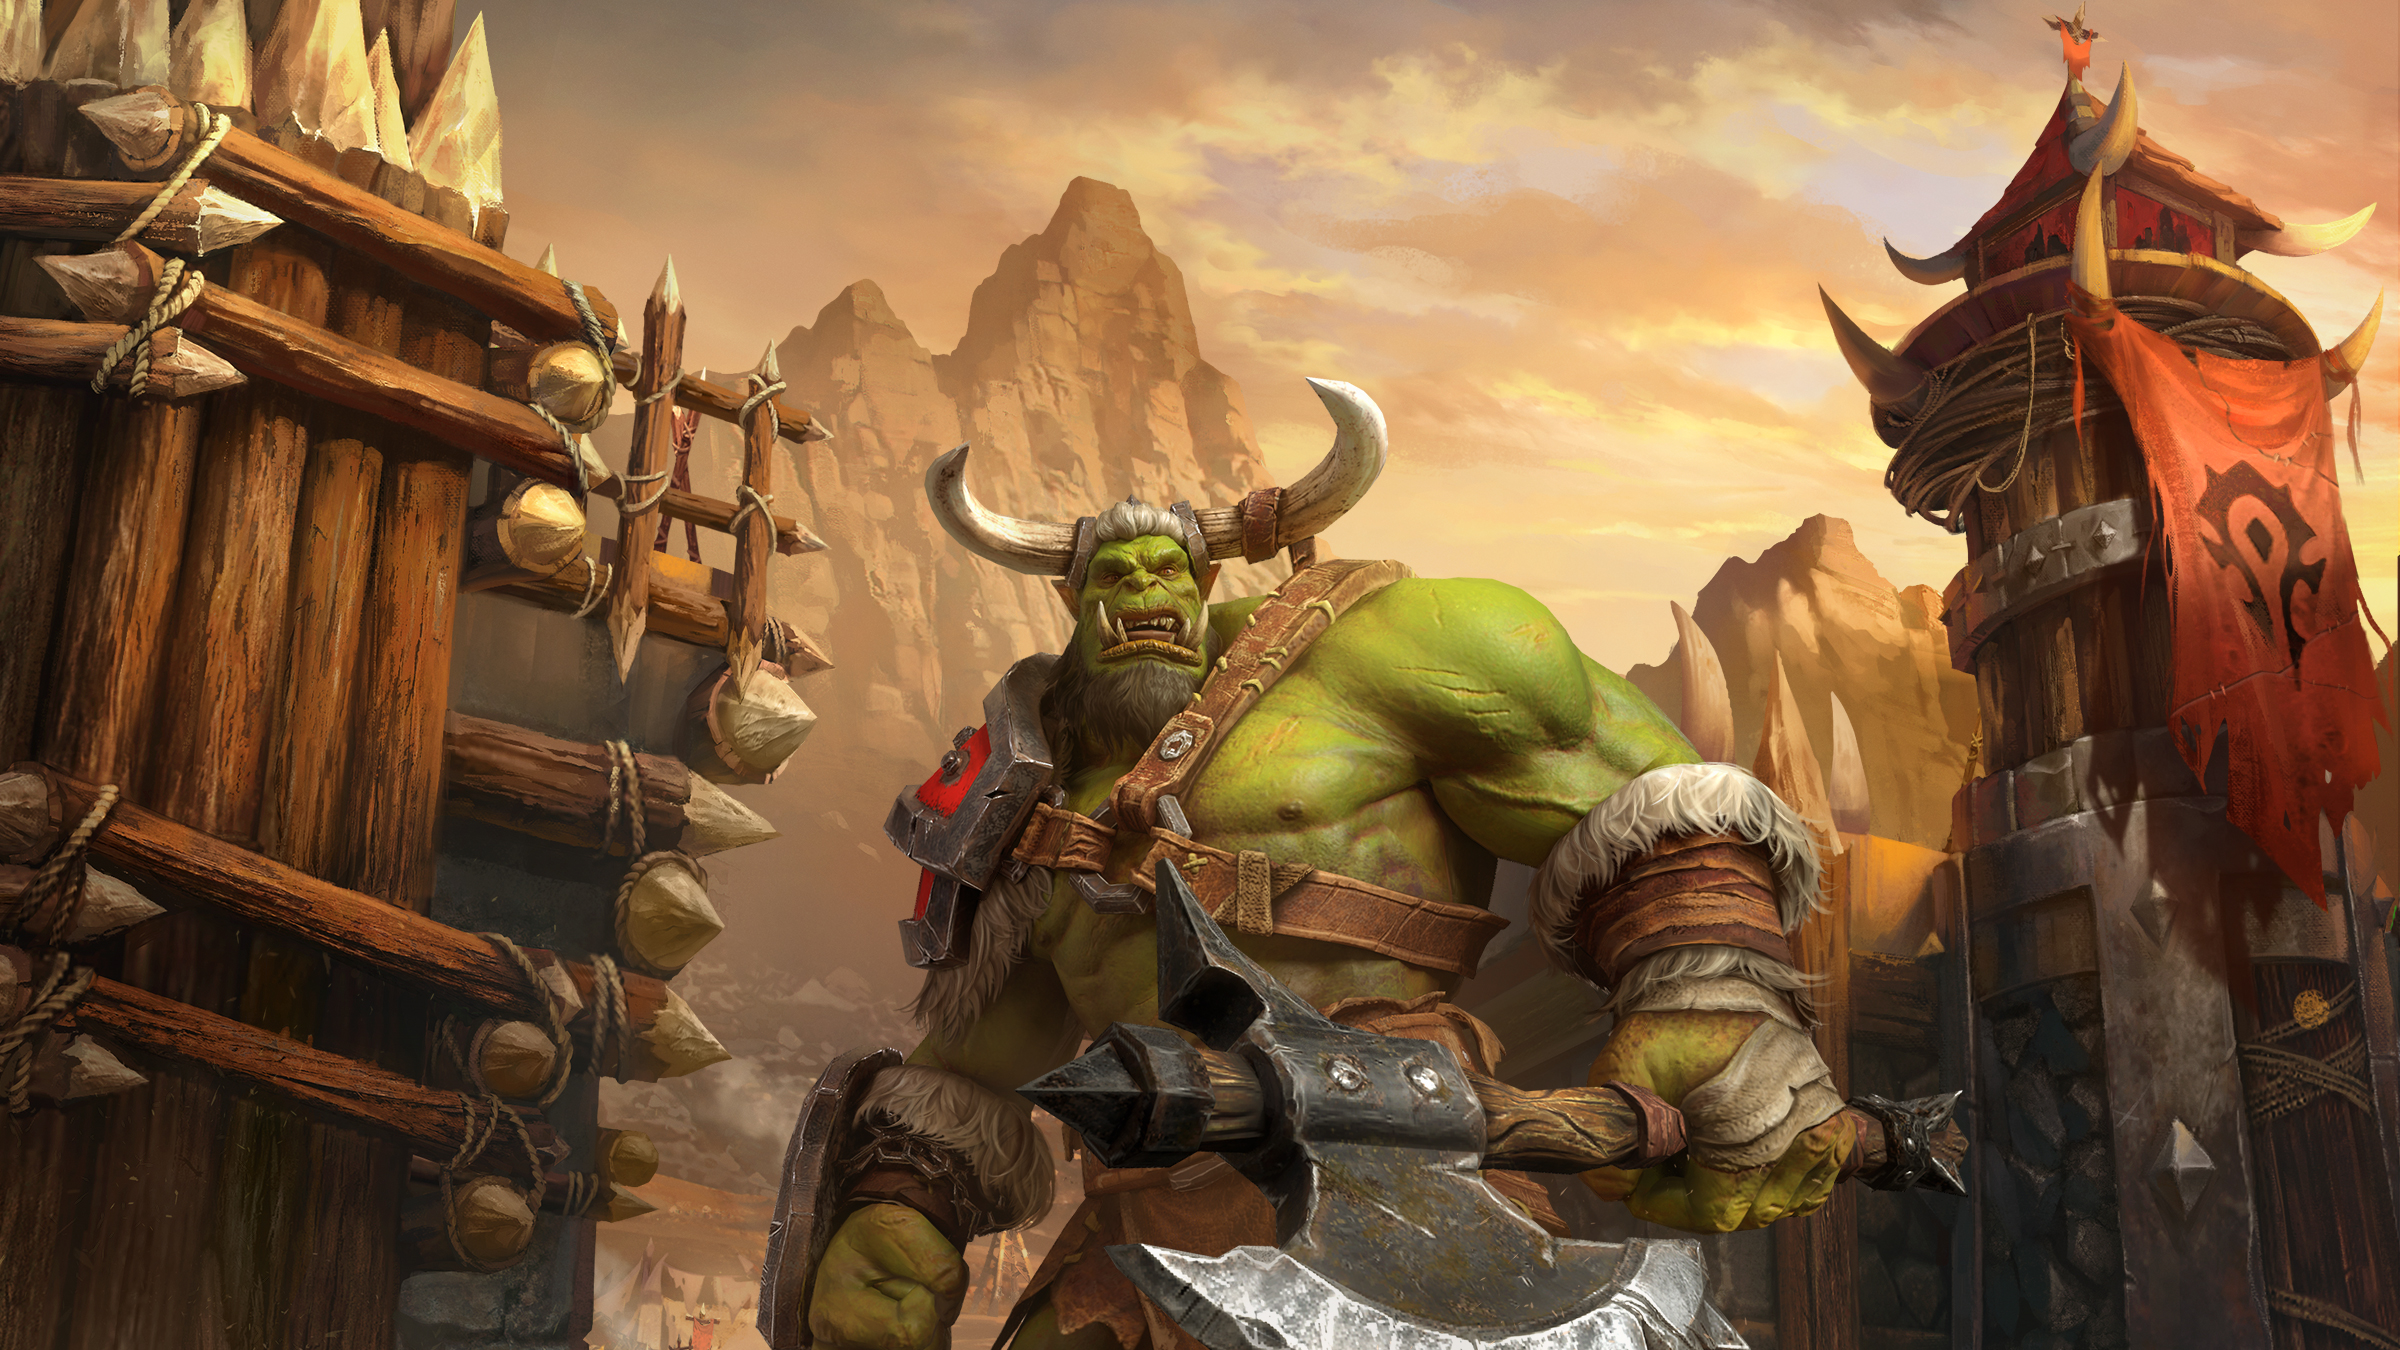 Juega Warcraft III: Reforged y revive los comienzos de World of Warcraft